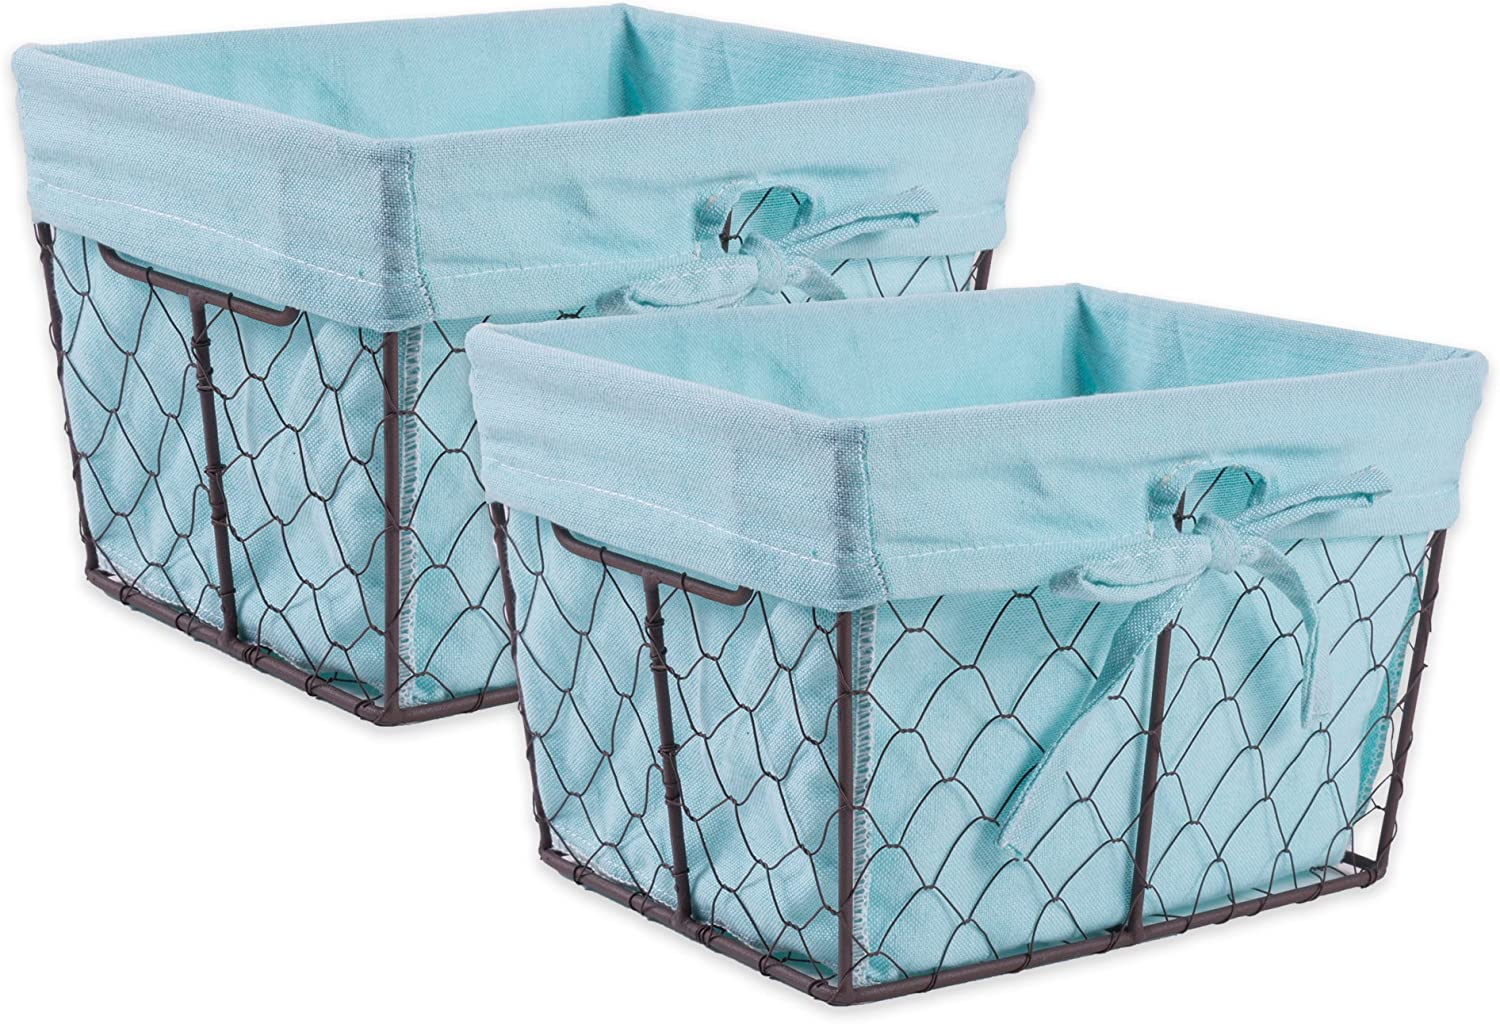 DII Vintage Chicken Wire Baskets for Storage Removable Fabric Liner, Set of 2, Aqua 2 Piece